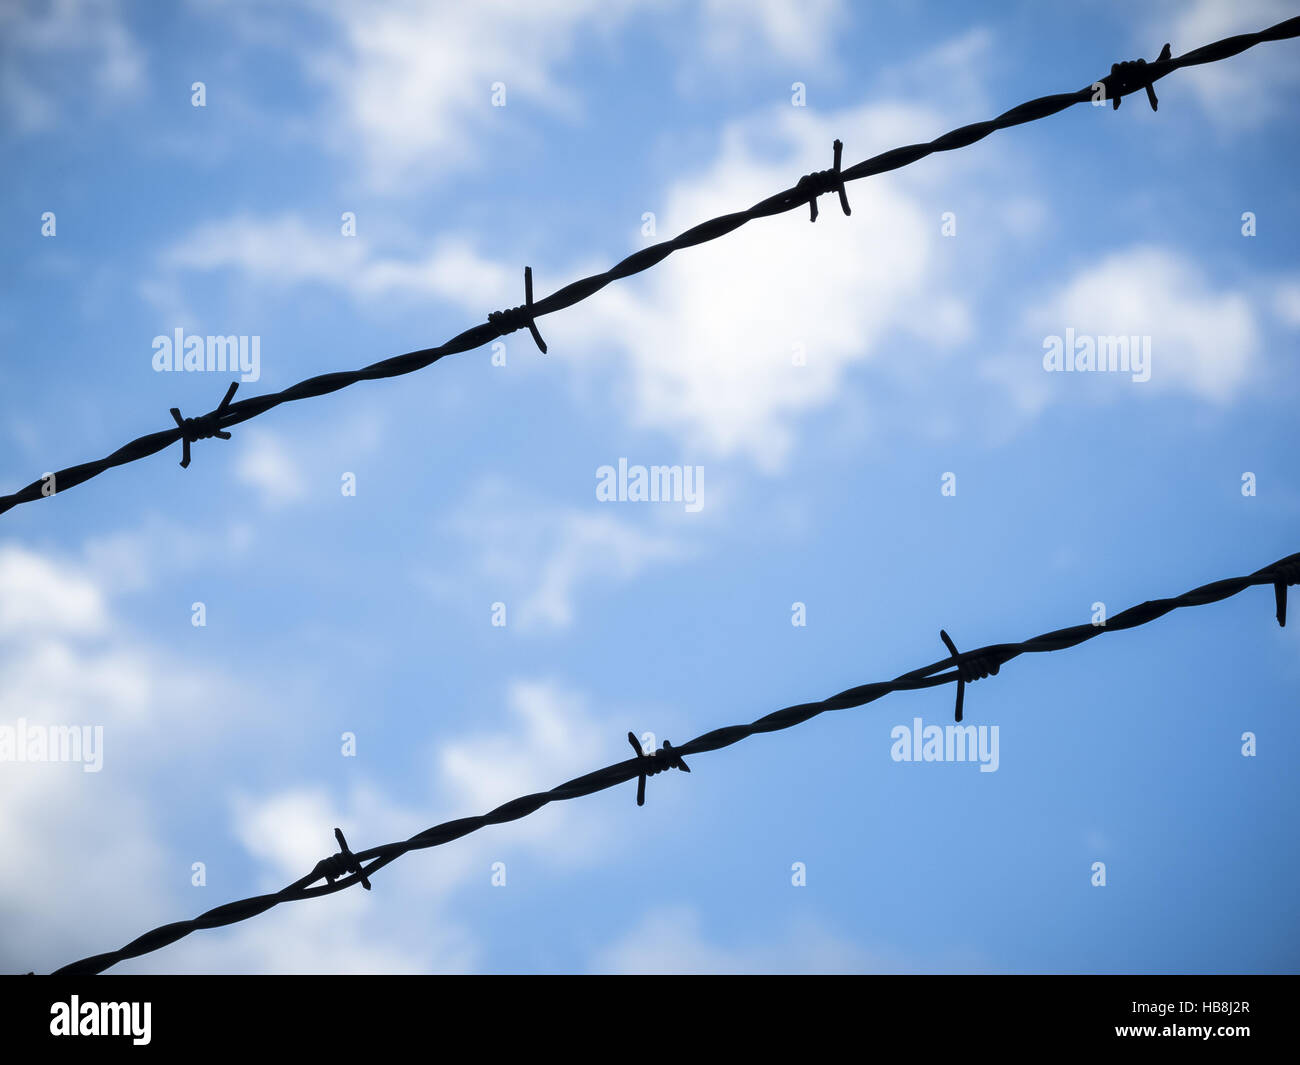 Barbed wire in the sky - Stock Image